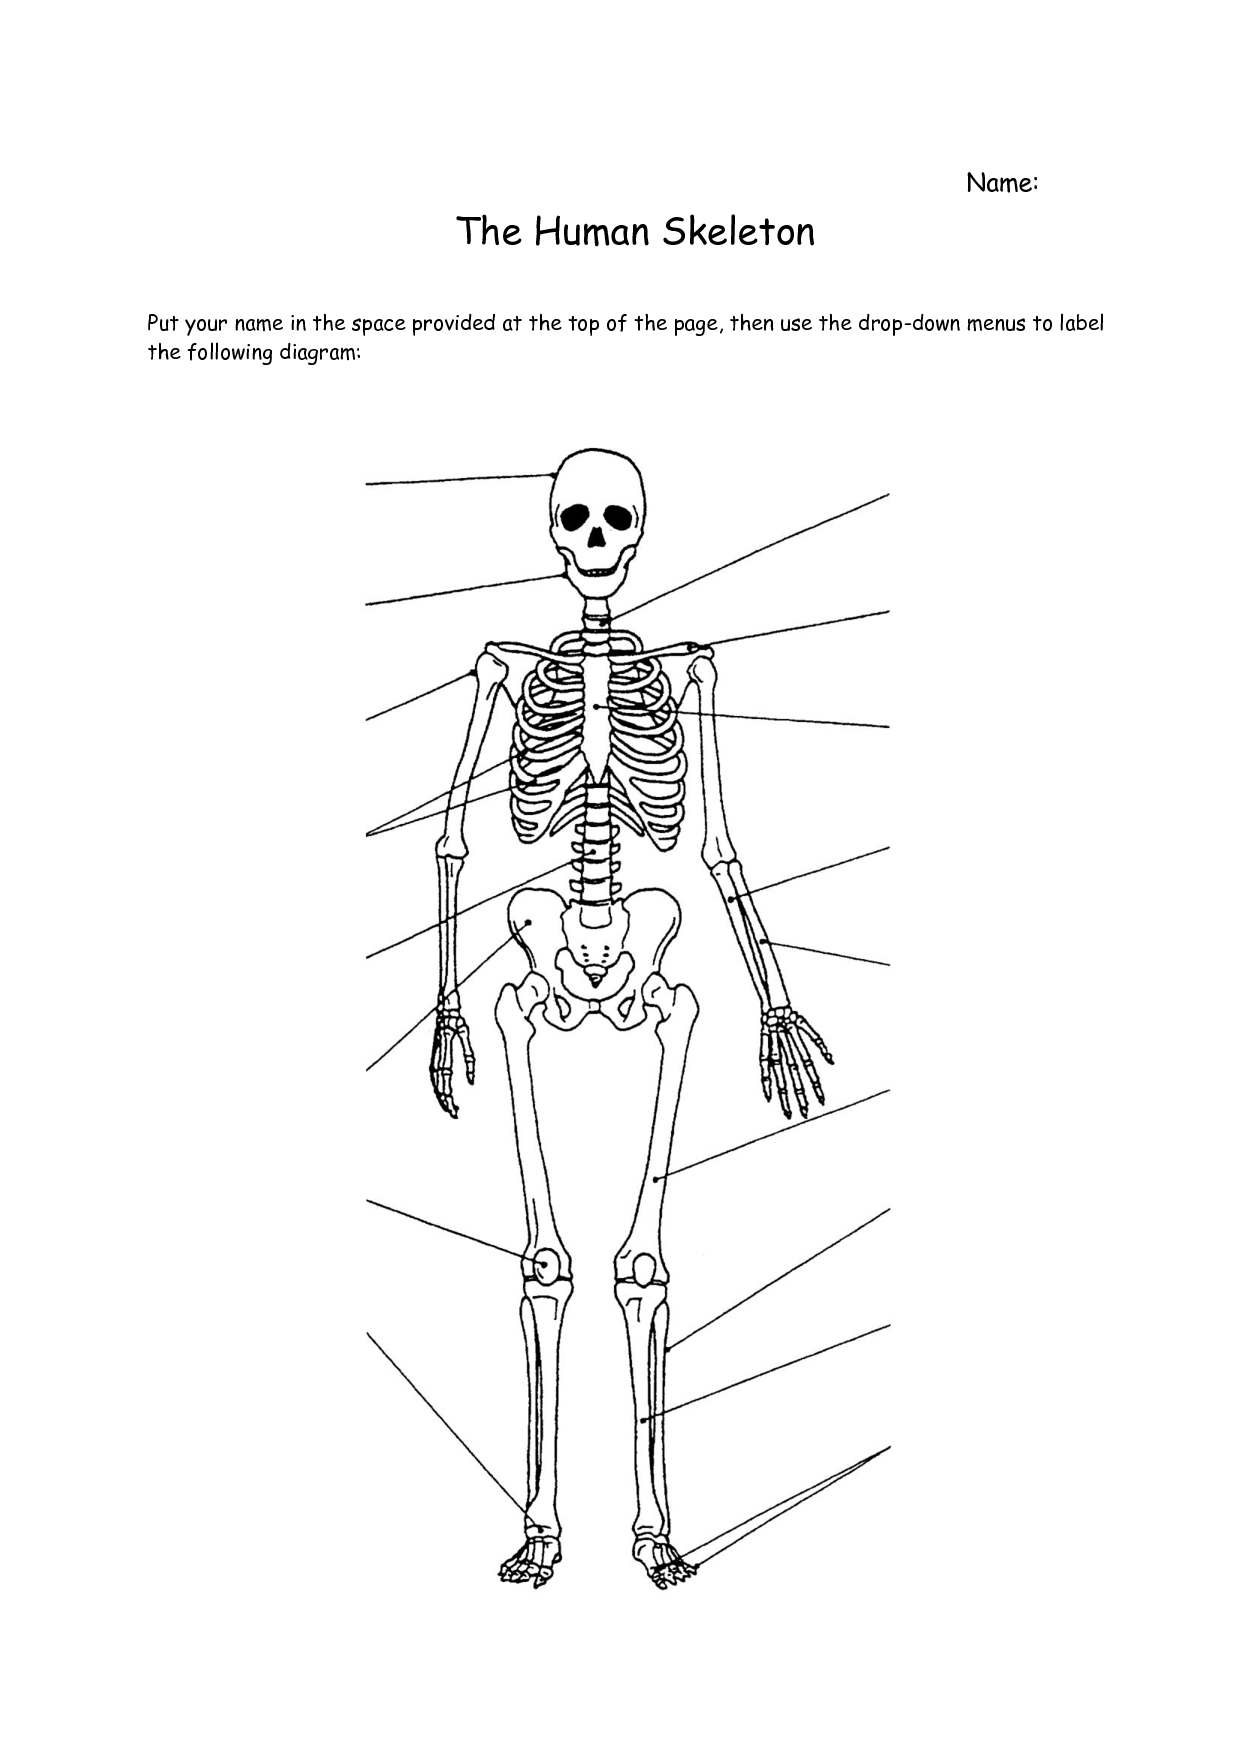 appendicular skeleton labeling worksheet worksheet workbook site rh pinterest com human skeleton diagram labels human skeleton diagram labeling game - Skeleton Worksheet